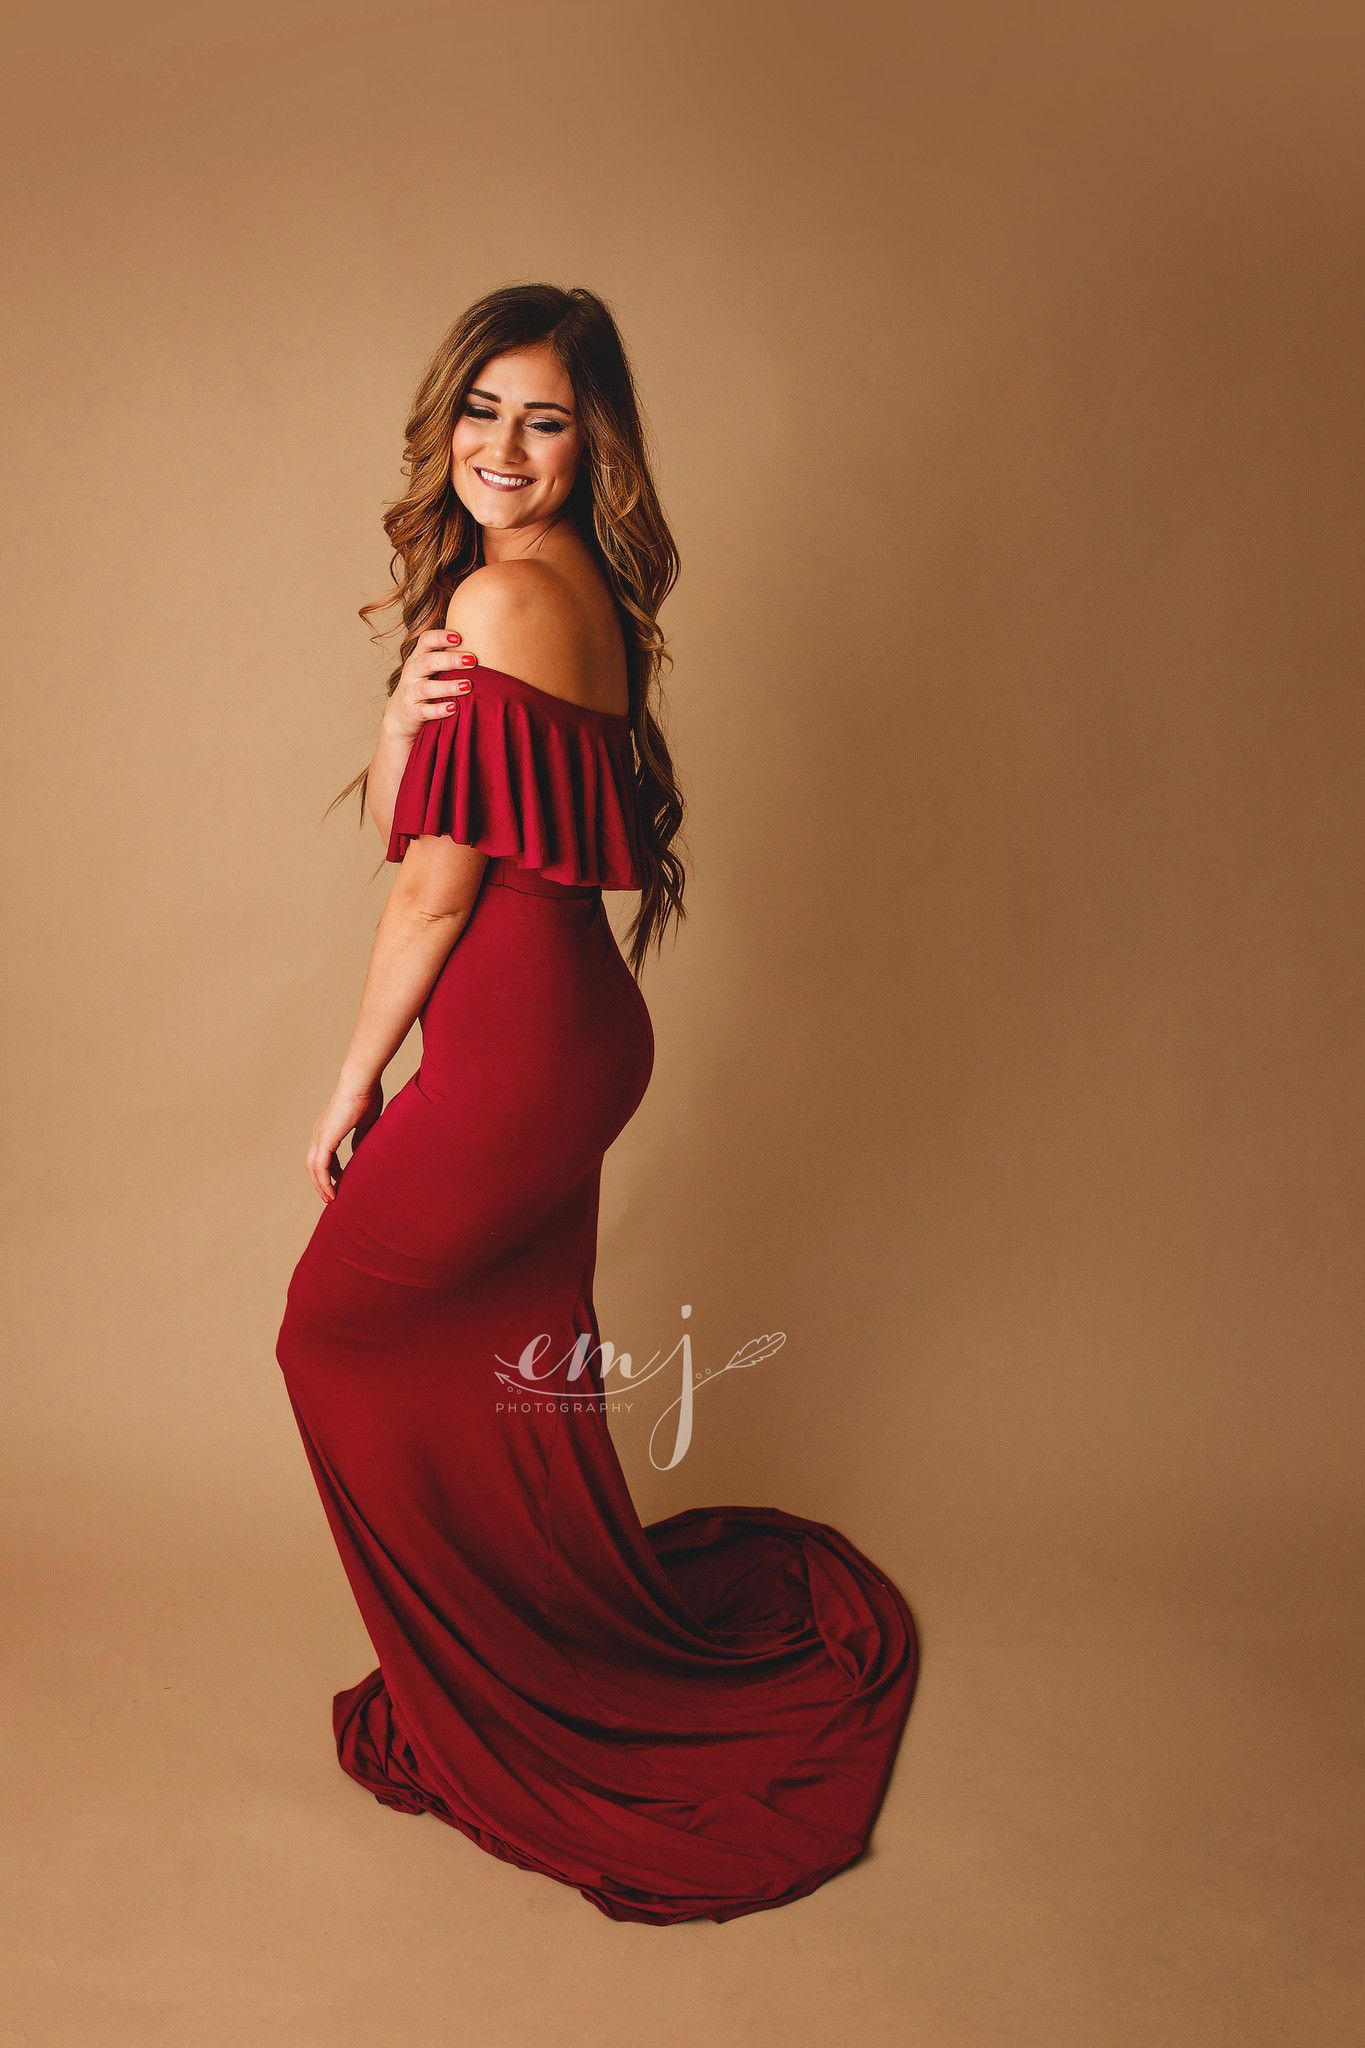 526737b0b5753 Colbie Gown • Fitted Maternity Gown • Ruffle Top Maternity Gown • Off  Shoulder Maternity Gown • Slim Fit Gown • Sweetheart Style Dress •  Bridesmaid Dress ...